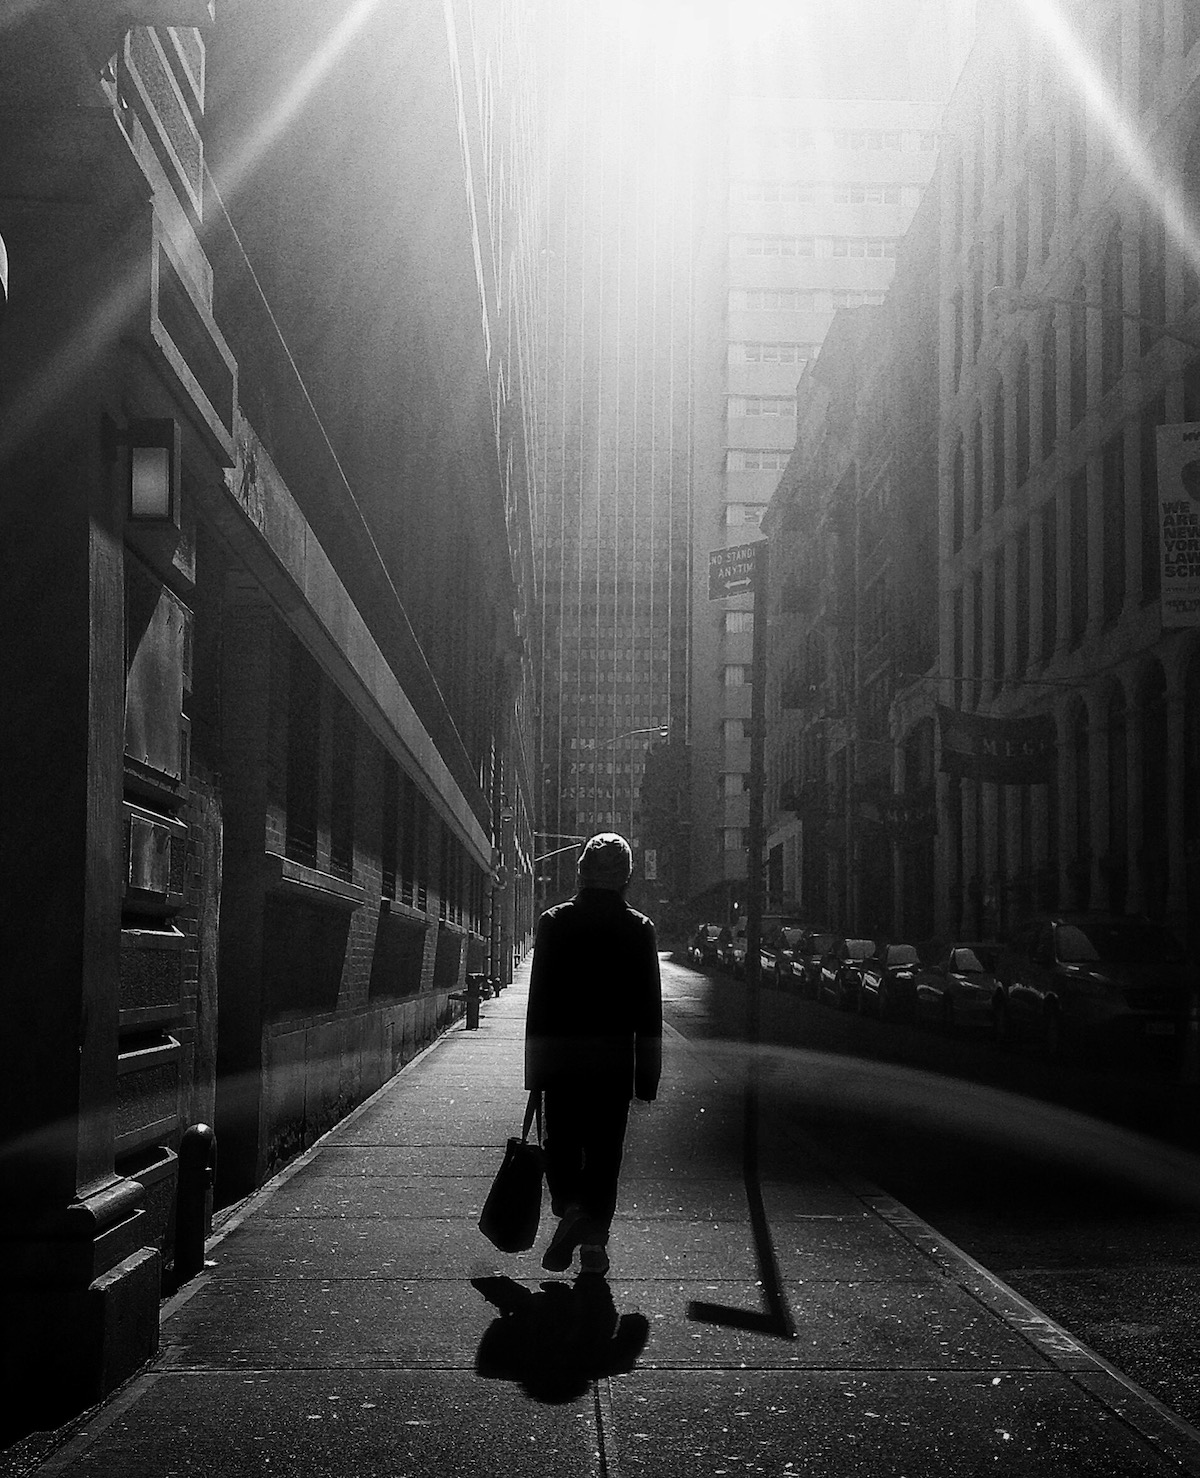 Jason petersons stunning black and white photography